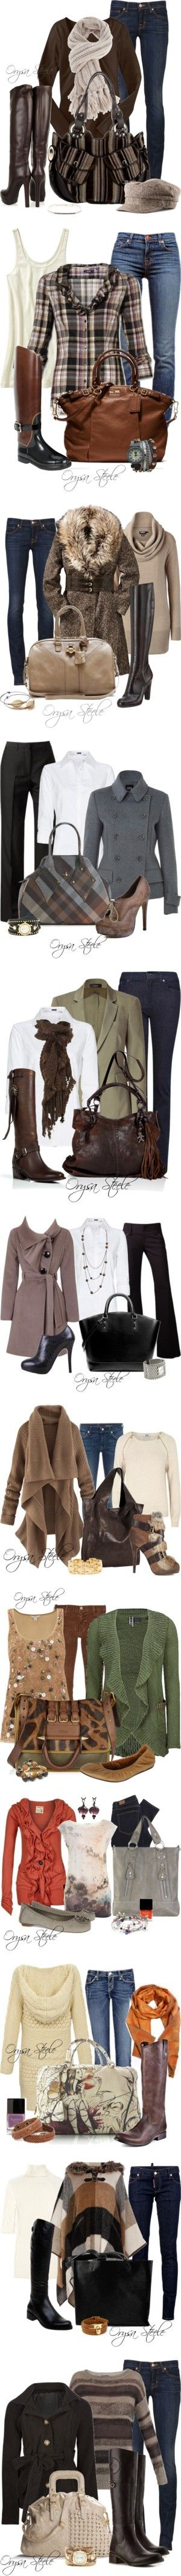 Fall-my favorite season! -- very cool site, too!  make your own style collages…